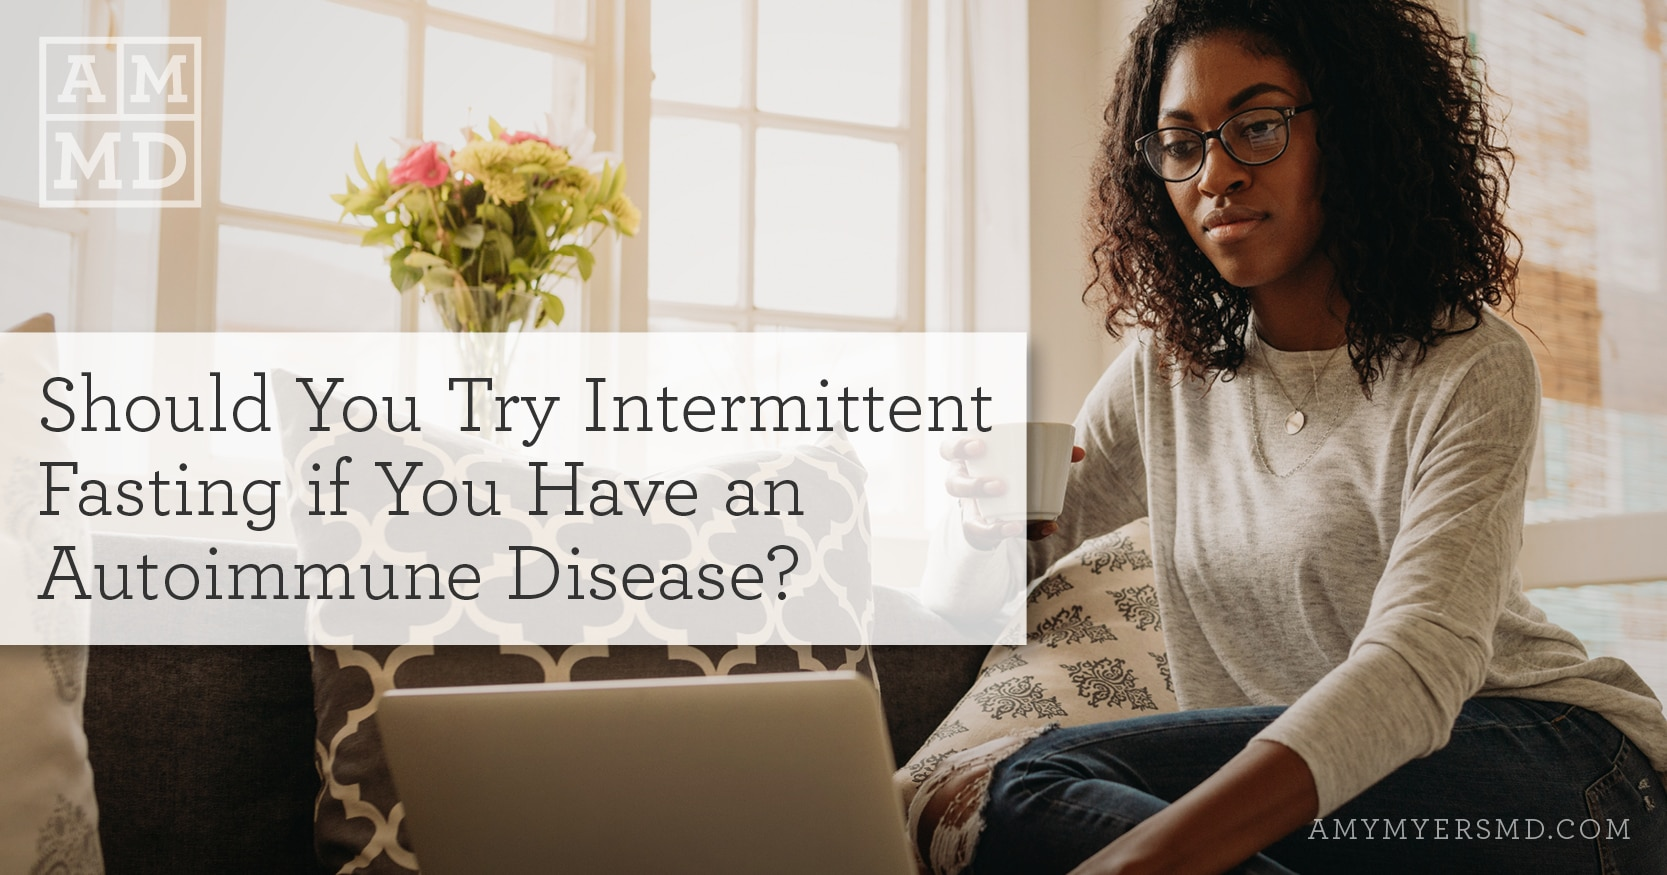 Should You Try Intermittent Fasting if You Have an Autoimmune Disease? - A Woman with a Laptop Computer - Featured Image - Amy Myers MD